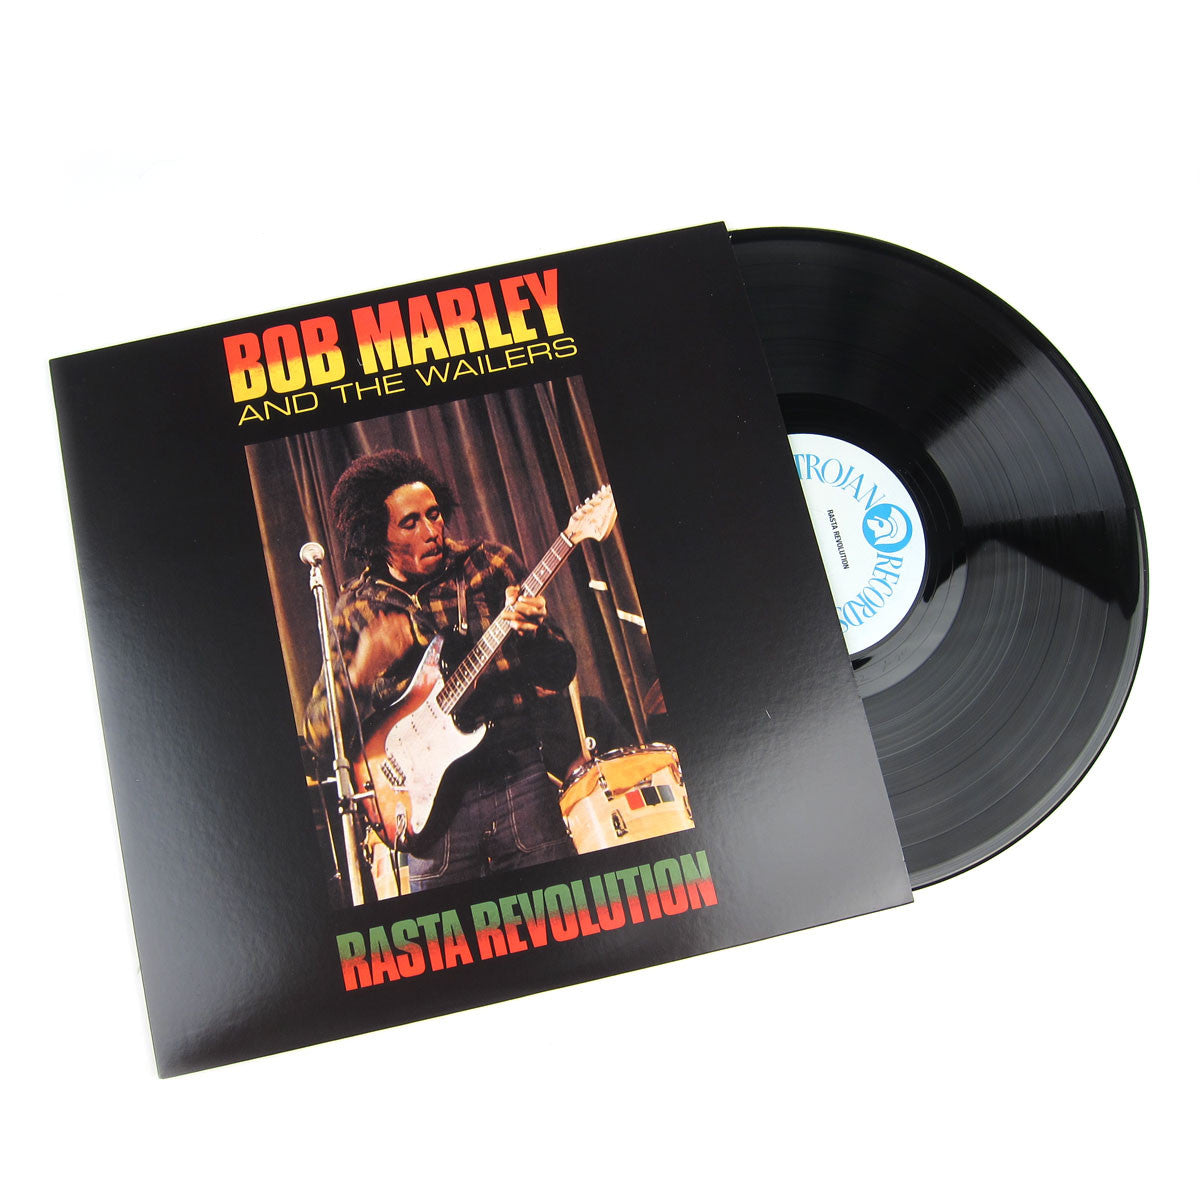 Bob Marley & The Wailers: Rasta Revolution (180g) Vinyl LP